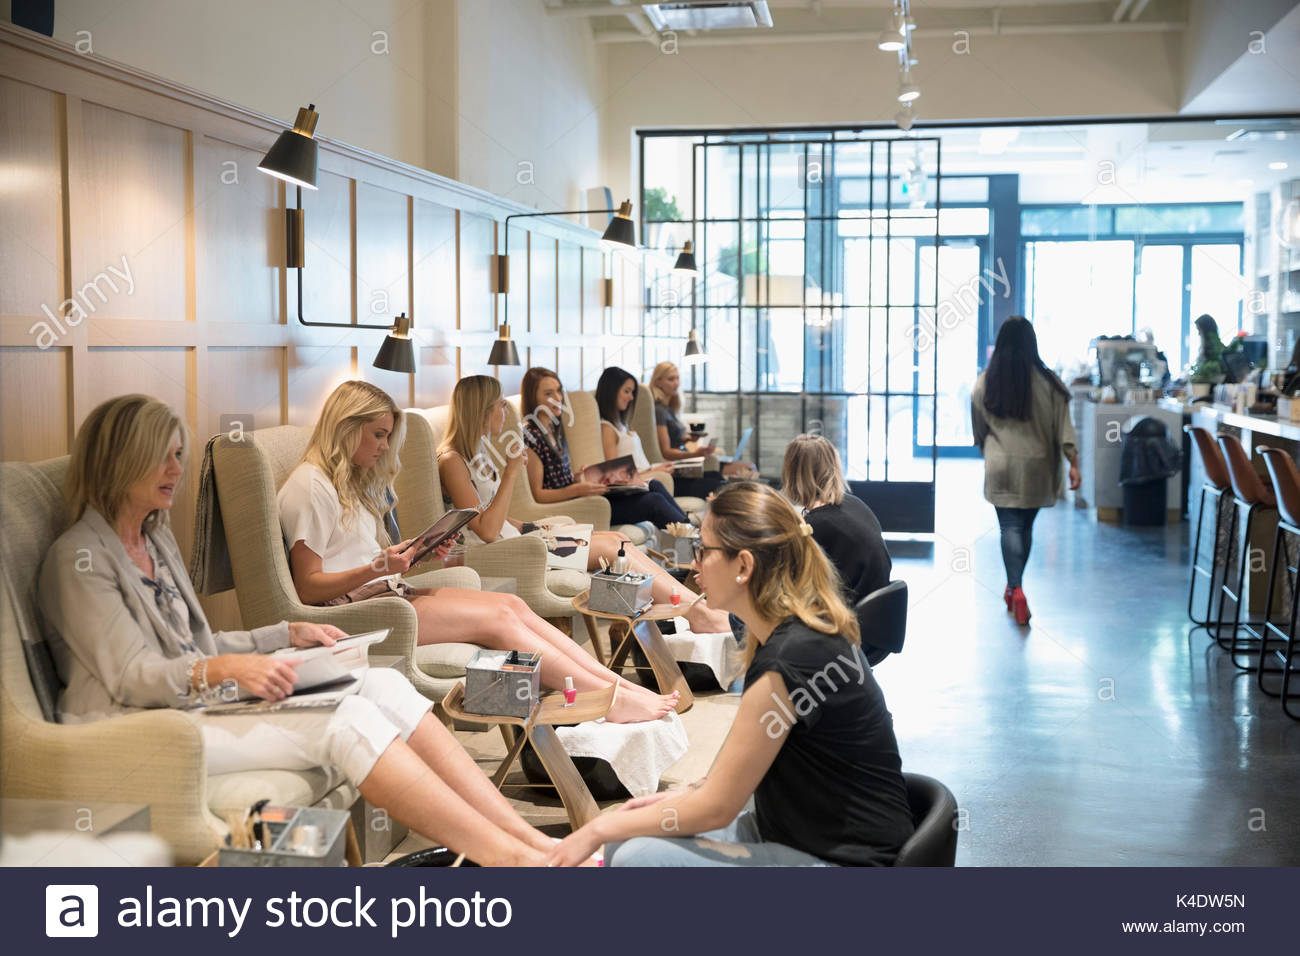 Female customers receiving pedicures at nail salon - Stock Image